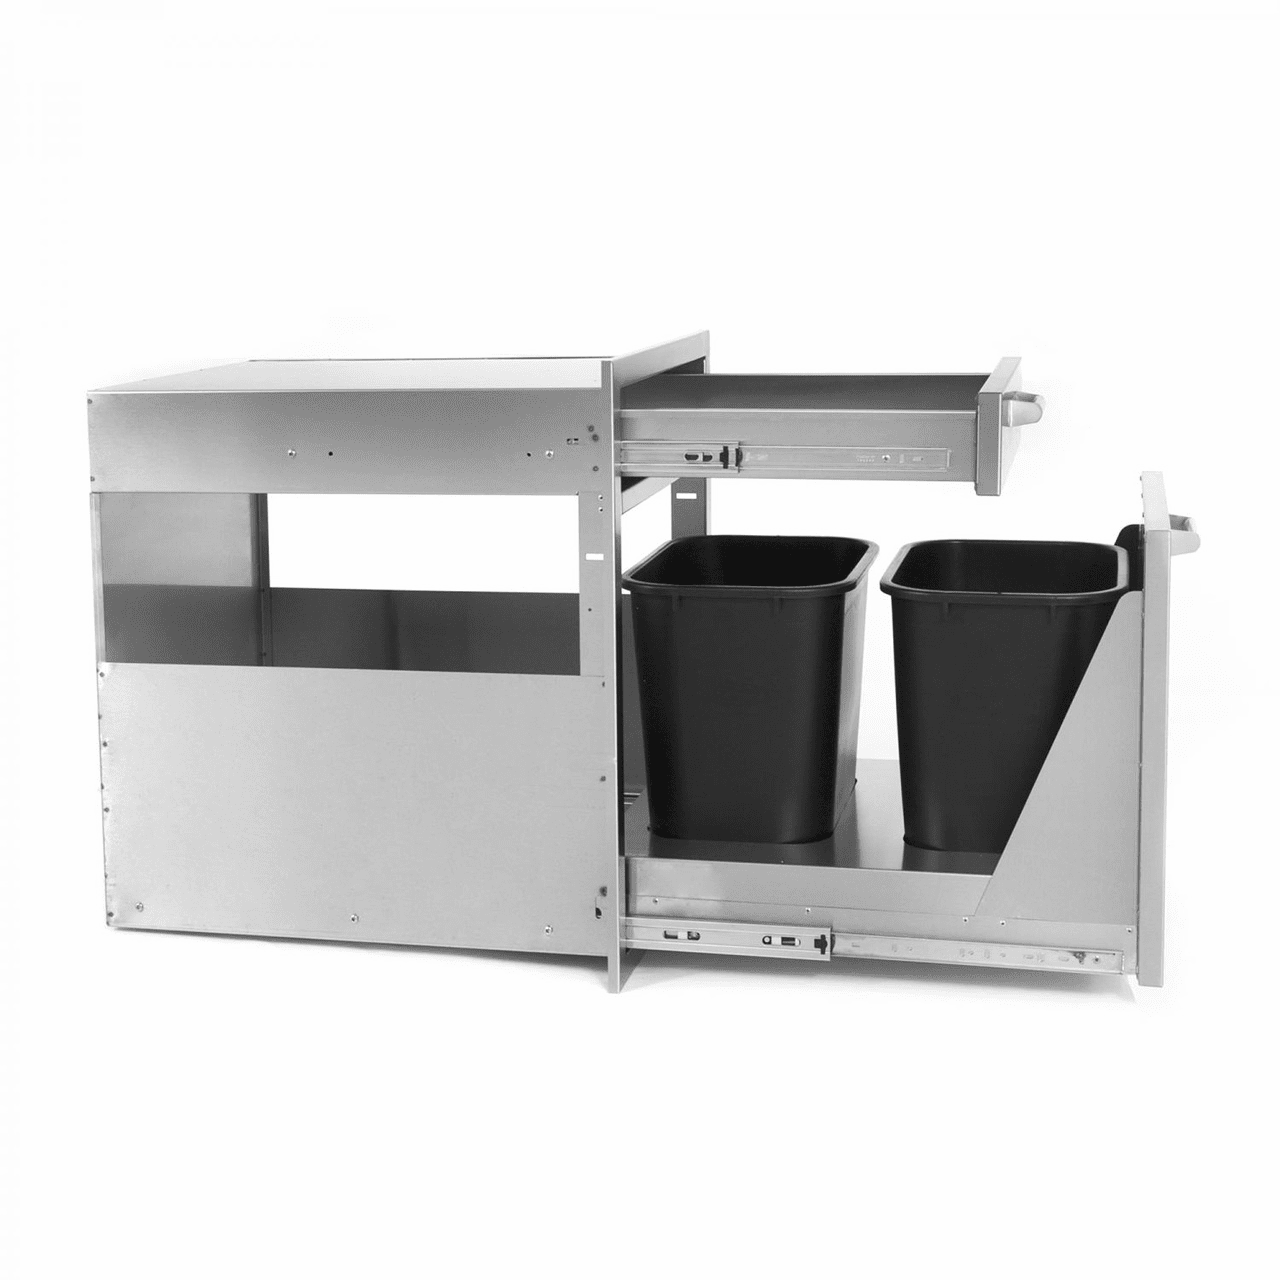 PCM 301H Series Trash - recycle Drawer Combo PCM-350H-TR-HDR21